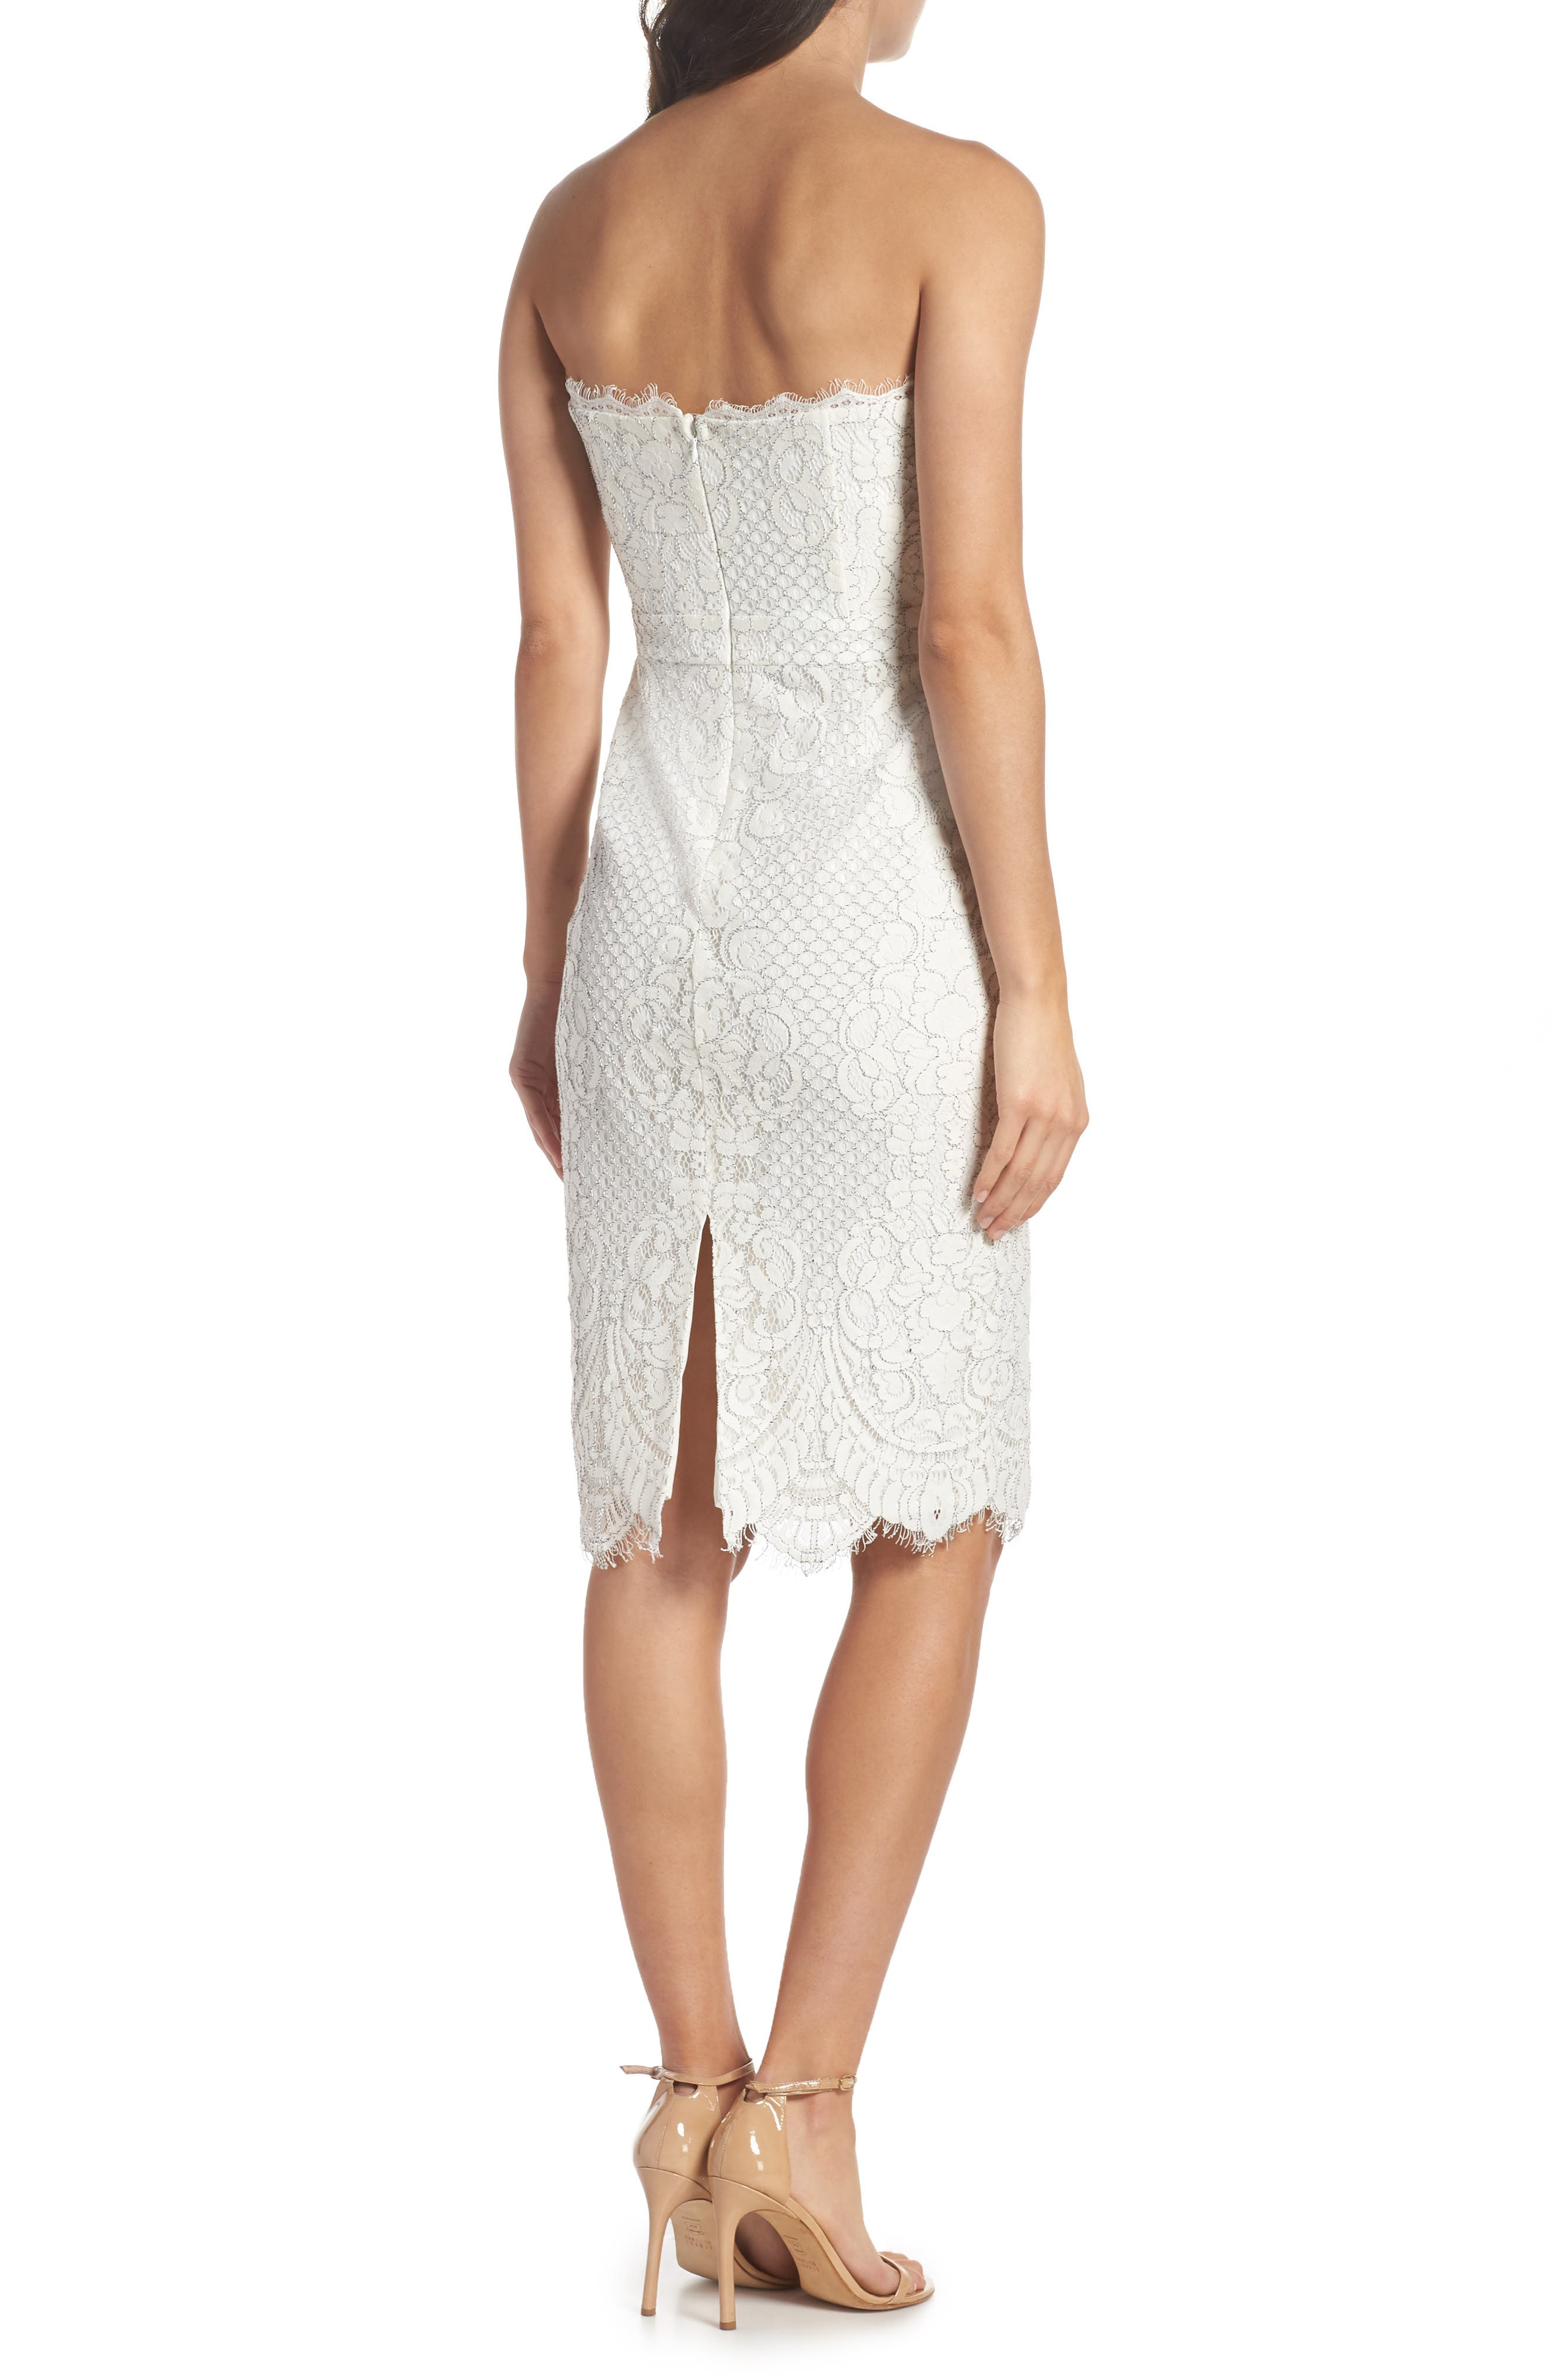 HARLYN,                             Strapless Lace Cocktail Dress,                             Alternate thumbnail 2, color,                             902